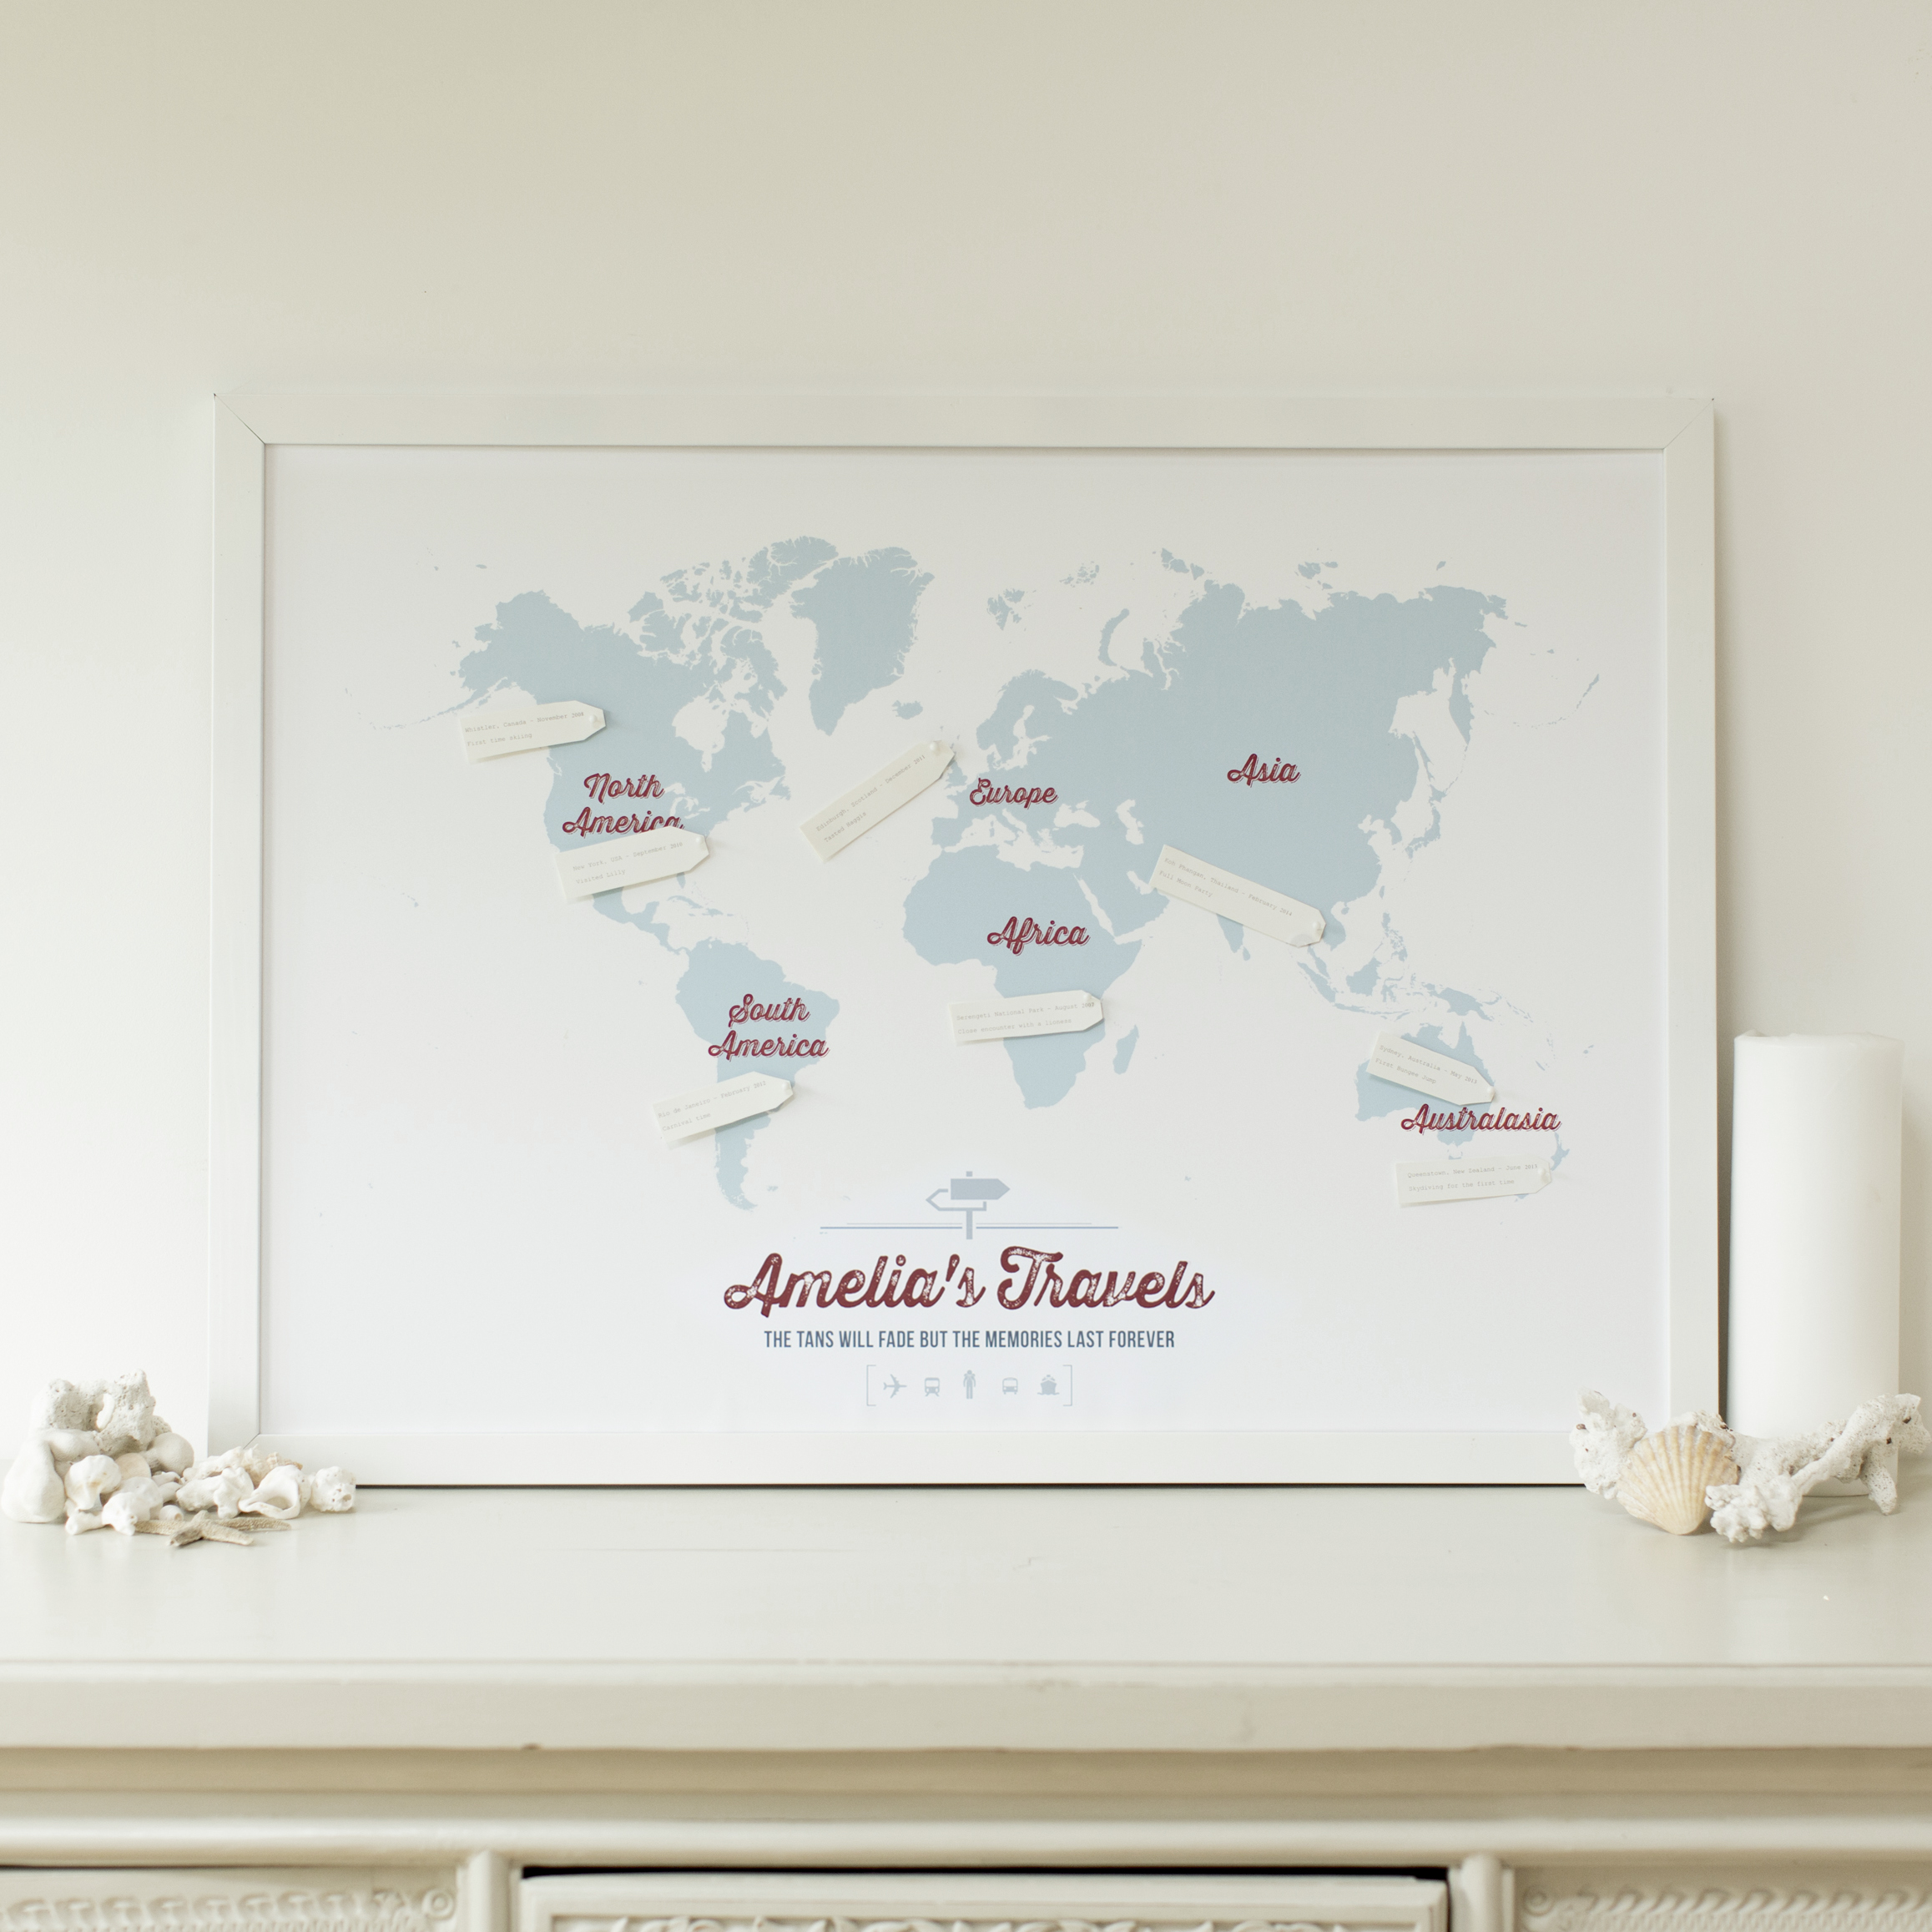 Personalised Travel Map with luggage tags